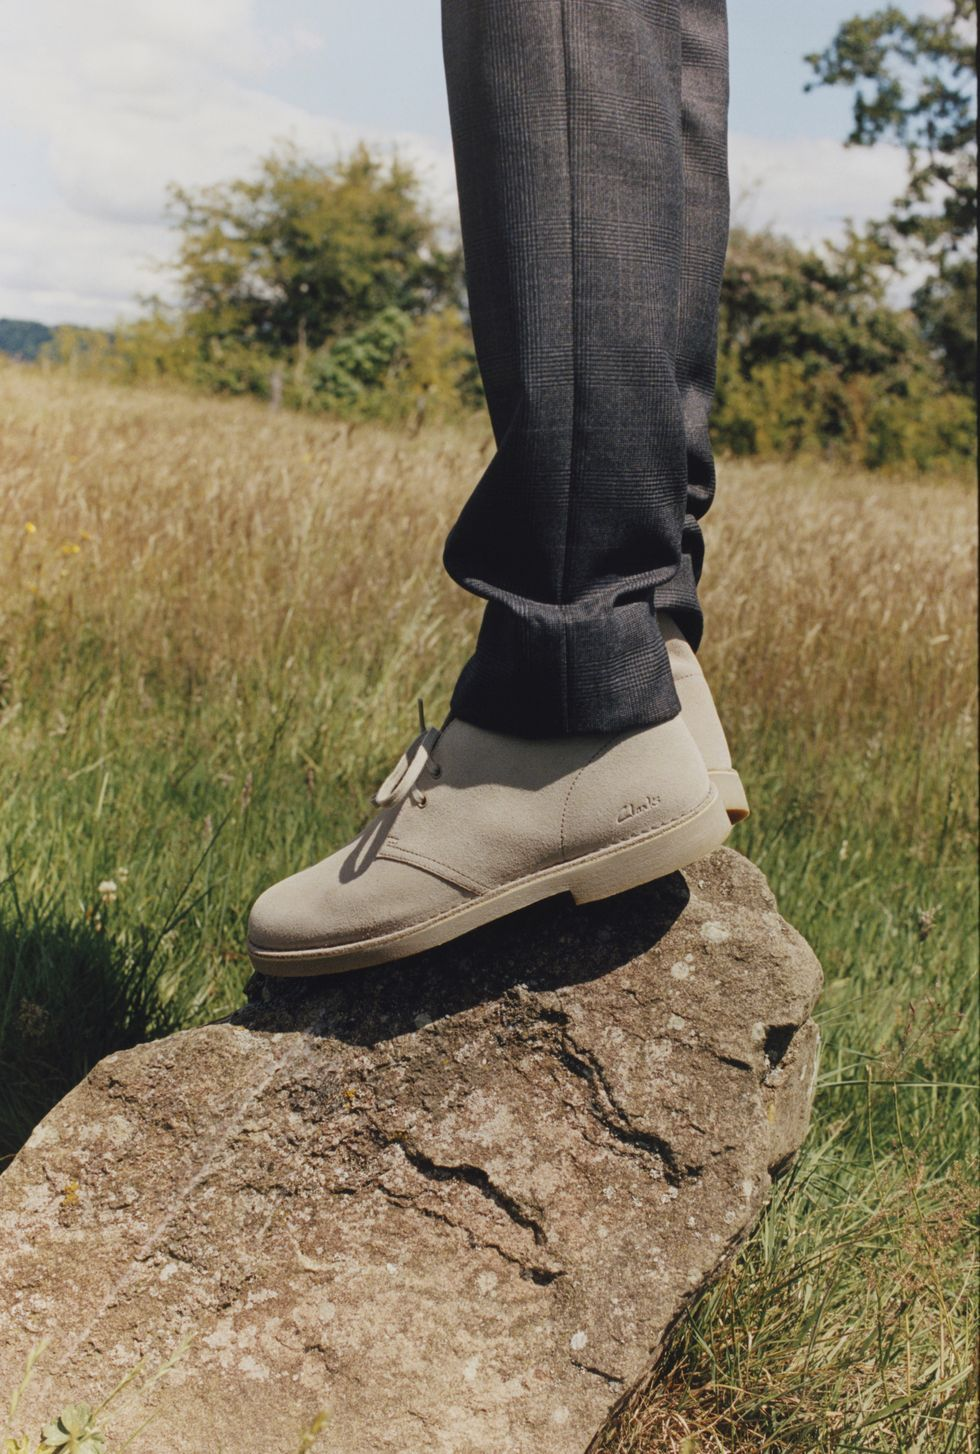 This Timeless Clarks Boot Balances Heritage With Innovation